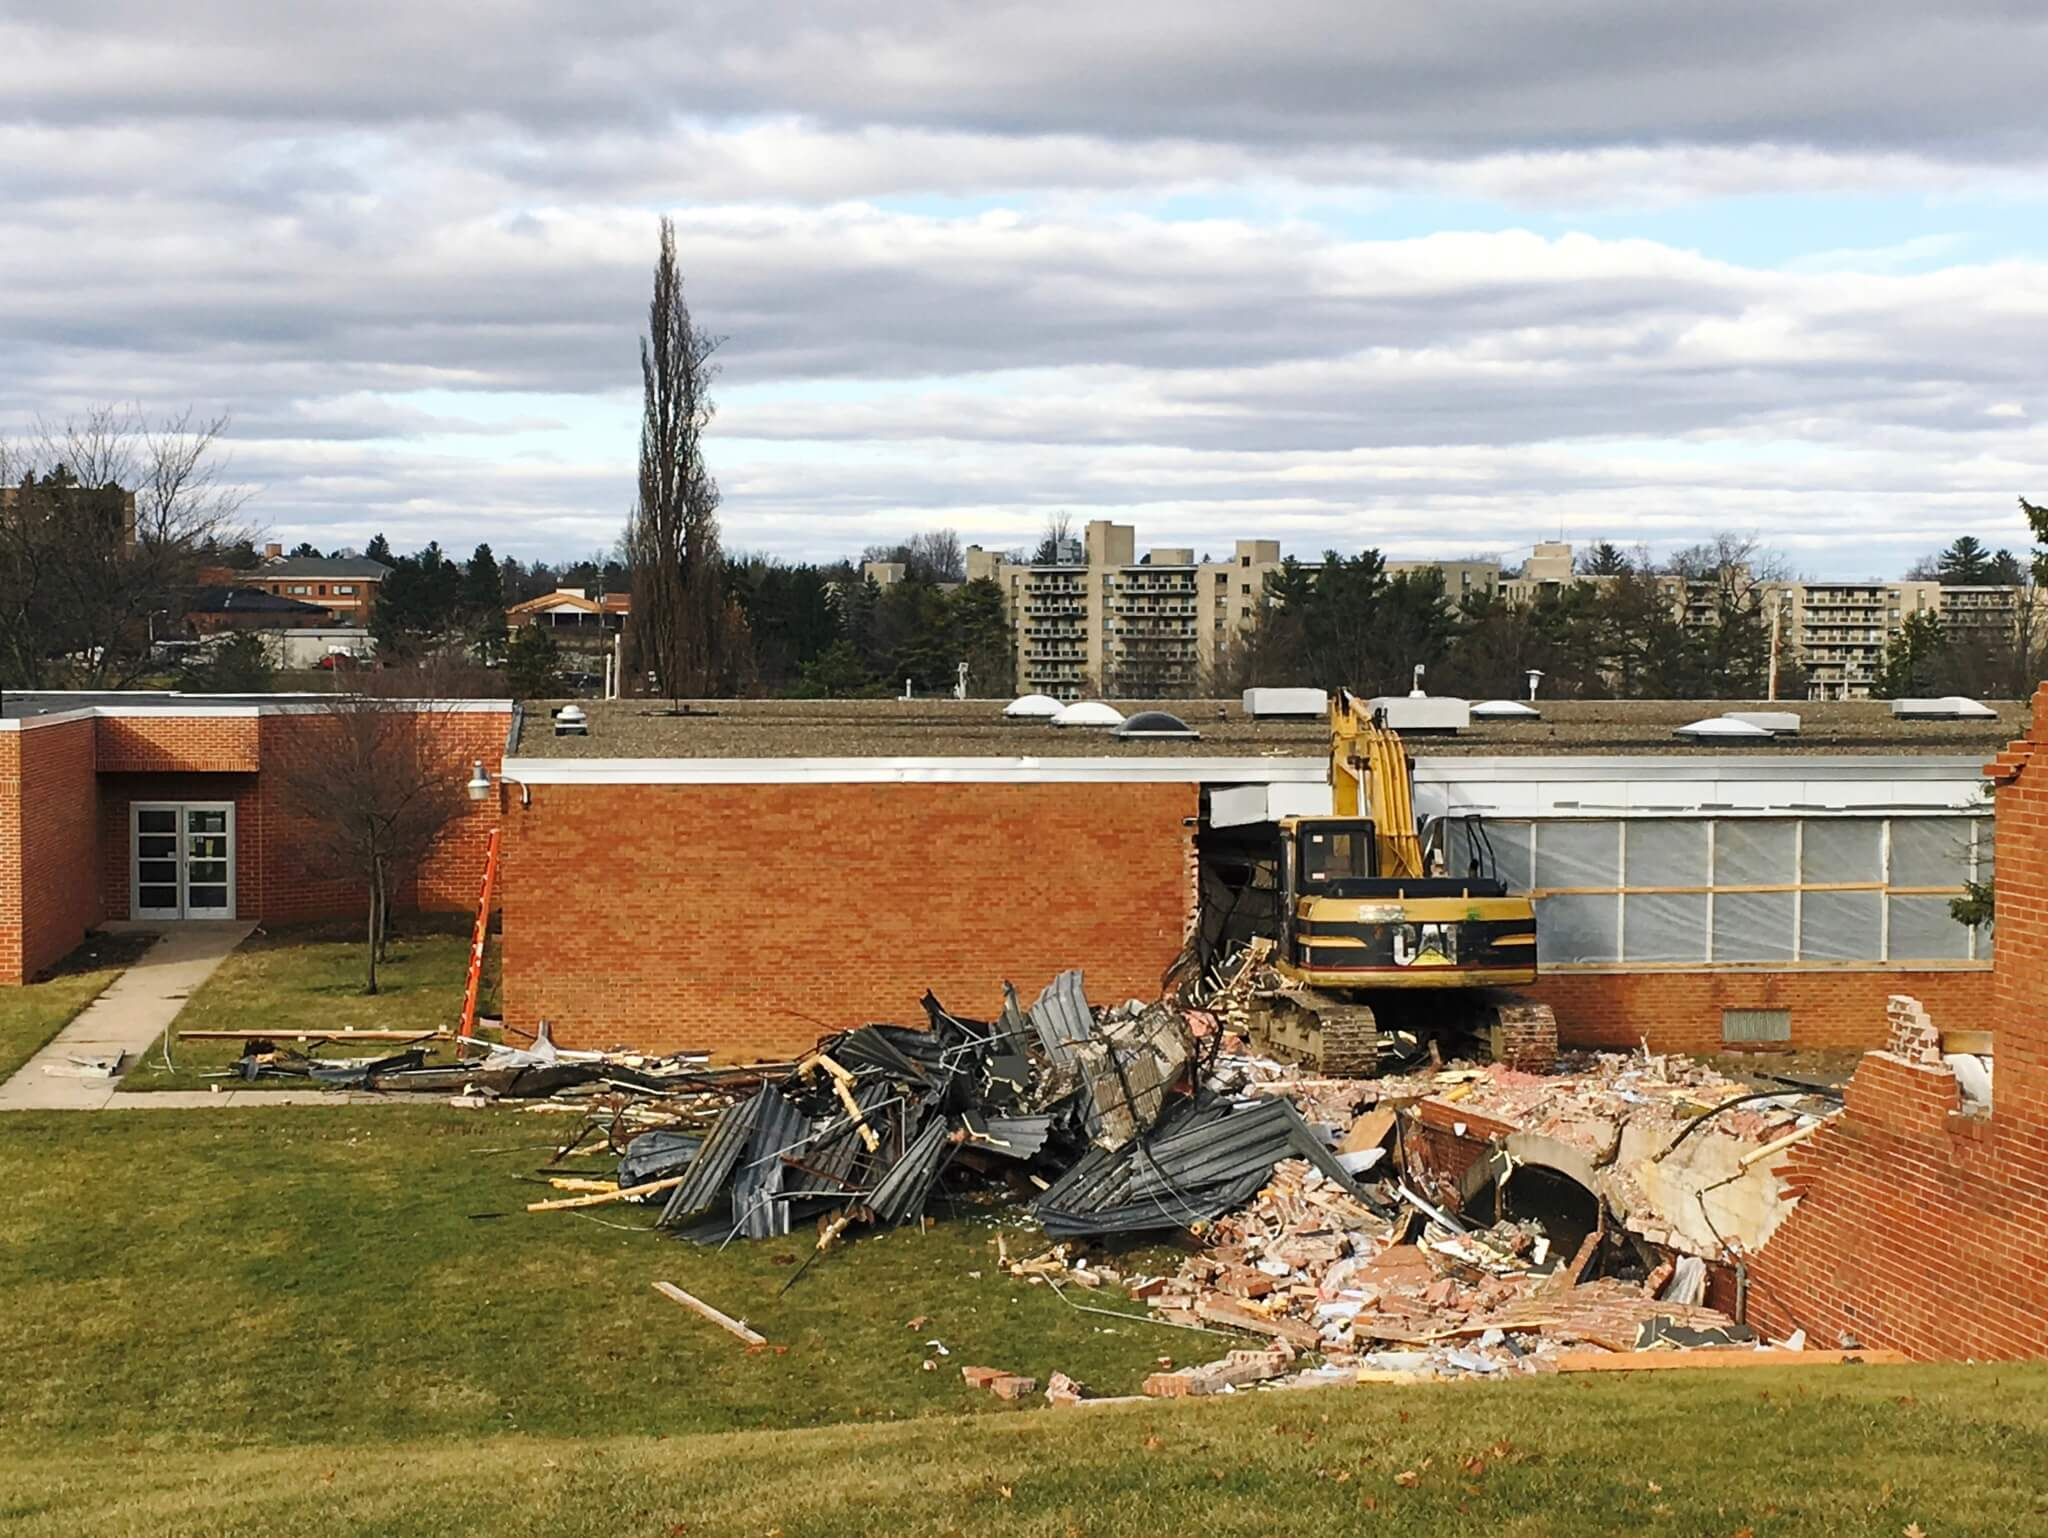 My high school under demolition